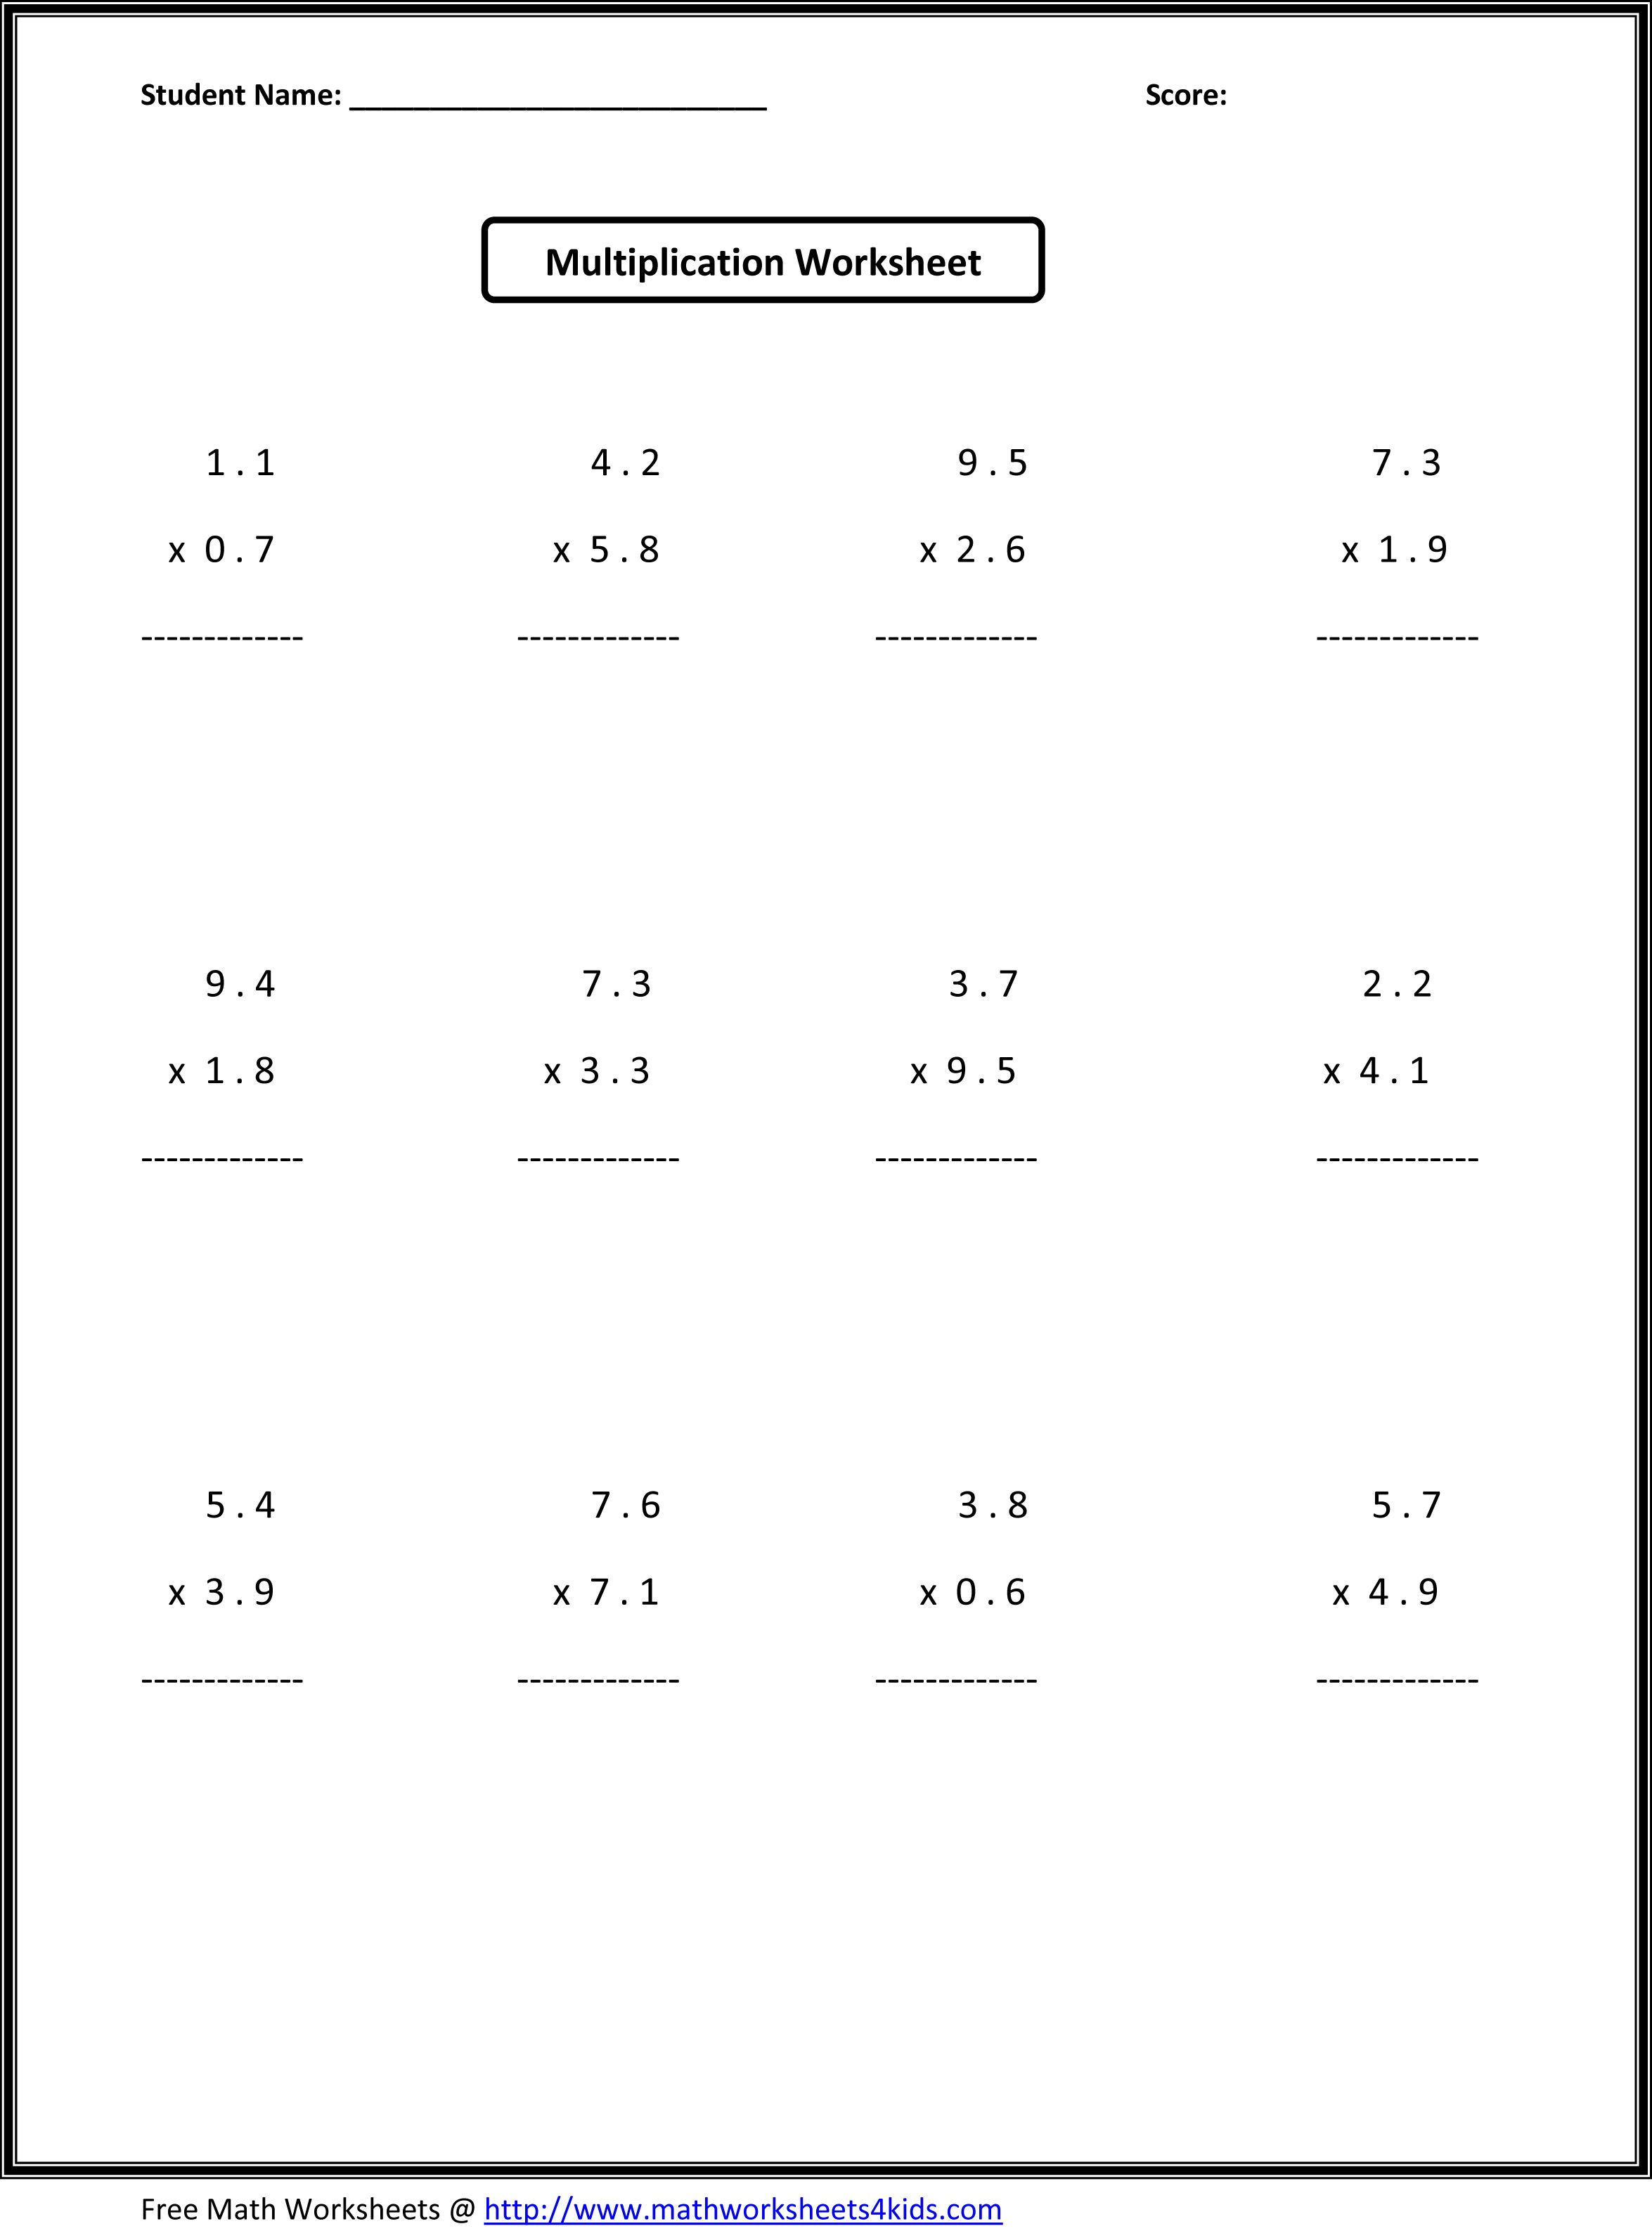 Worksheets Math Worksheets 6th Grade math decimals worksheets riddles 4th 5th 6th 7th grade sixth have ratio multiplying and dividing fractions algebraic expressions equations inequalities geom